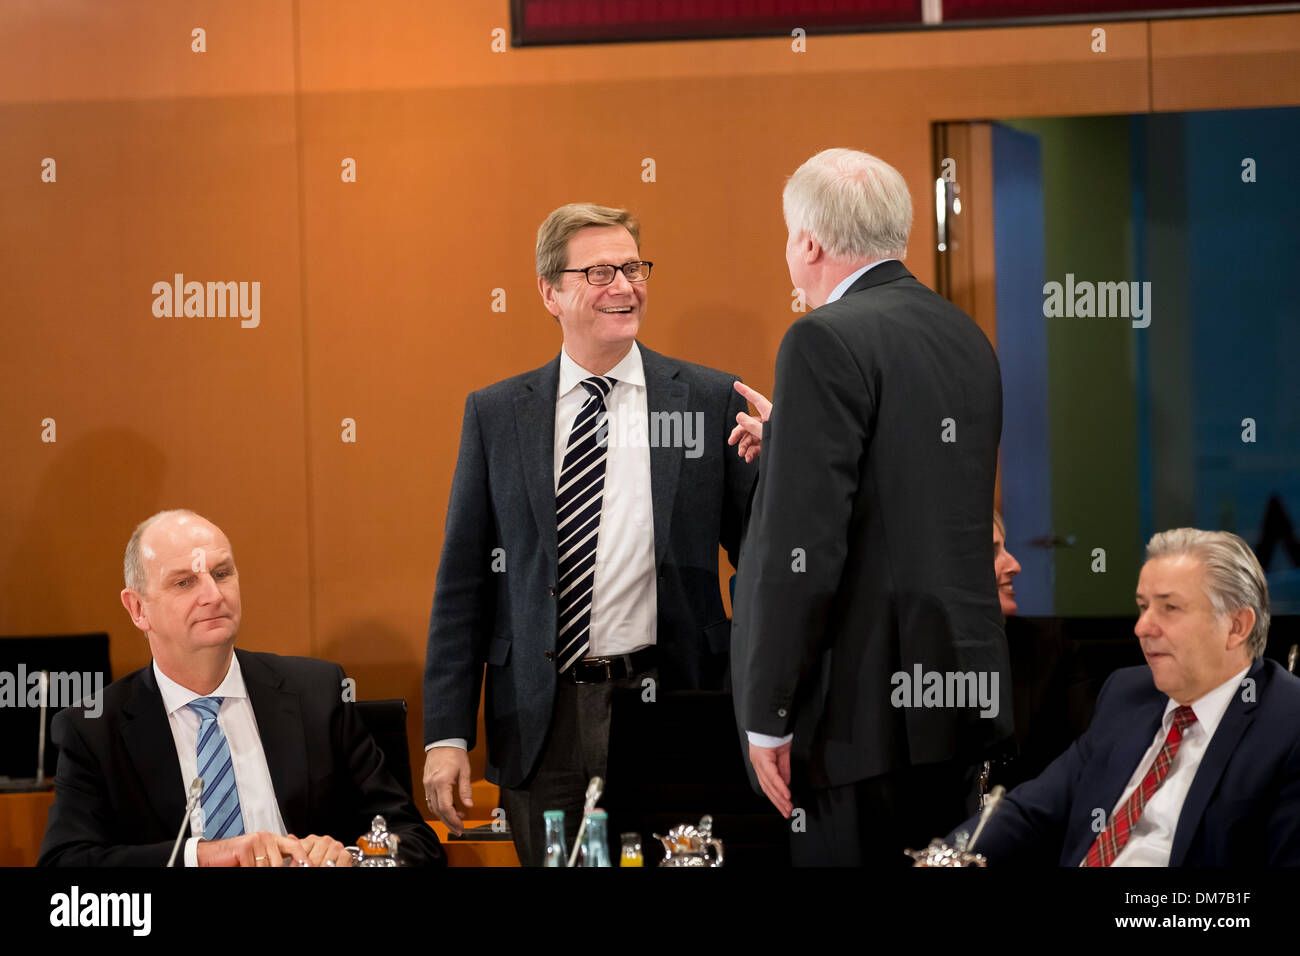 Berlin, Germany. December 12th, 2013. Chancellor Merkel and Interior Minister Friedrich meet with the Prime Ministers Stock Photo